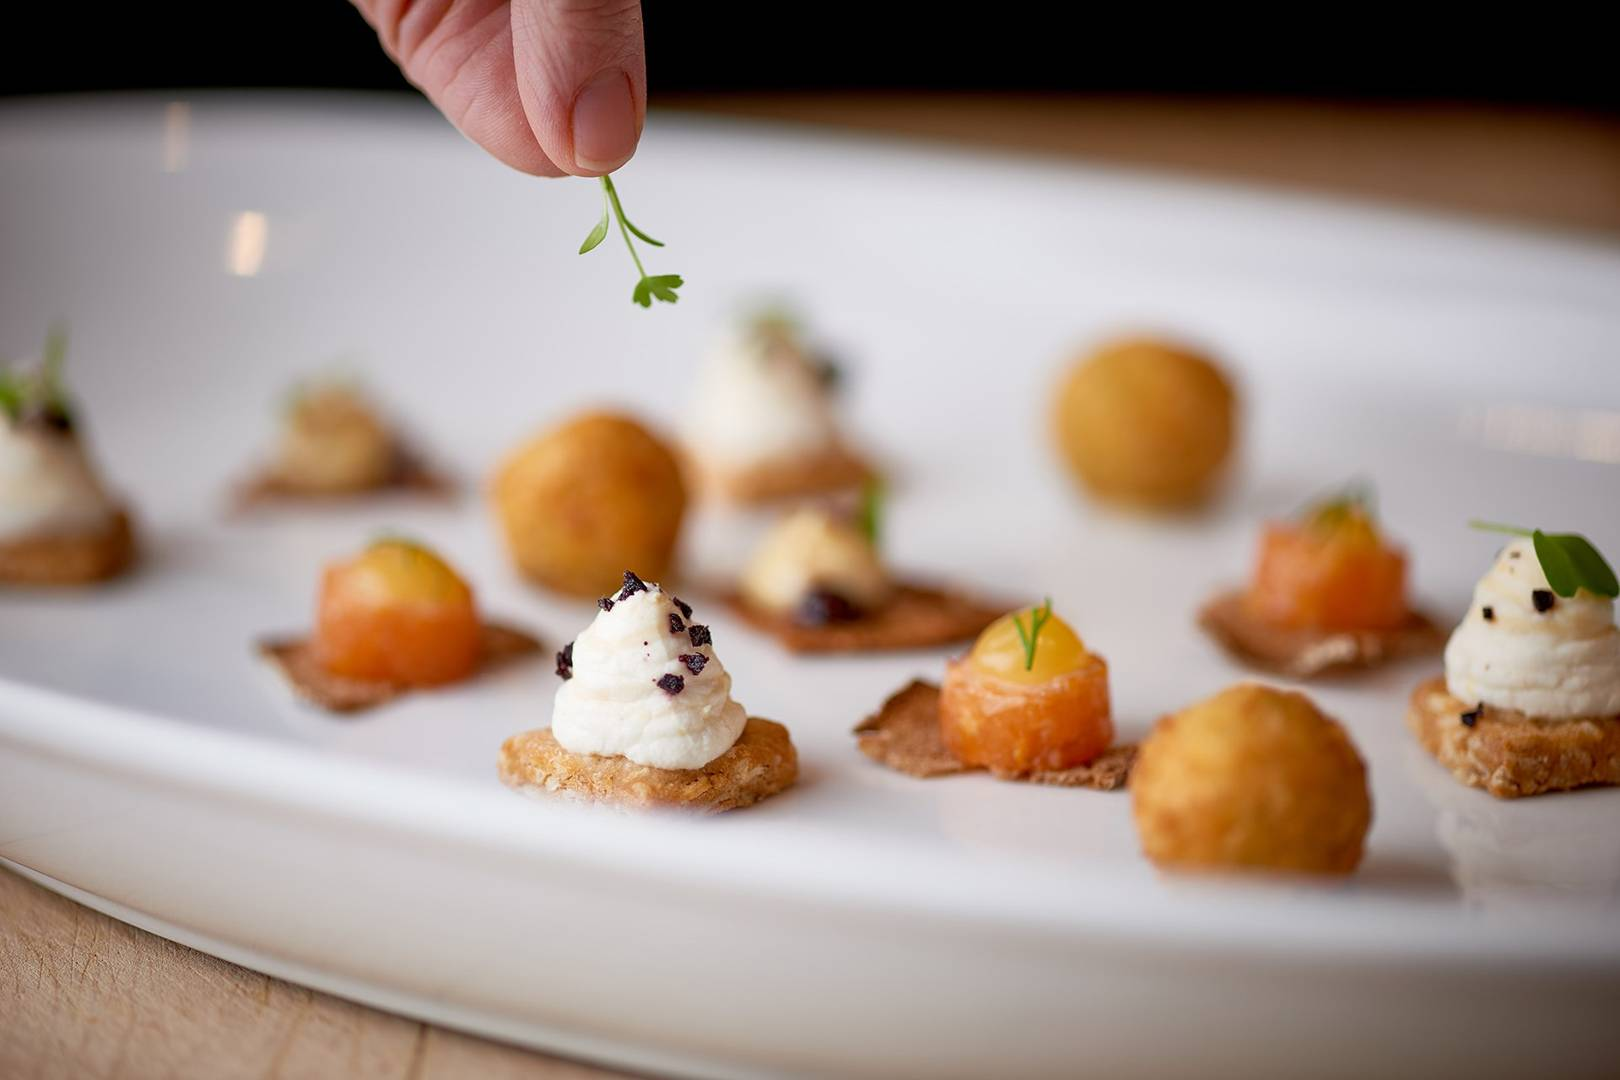 Cookery Courses Oxfordshire Canapé Making Raymond Blanc Cookery School |  House U0026 Garden